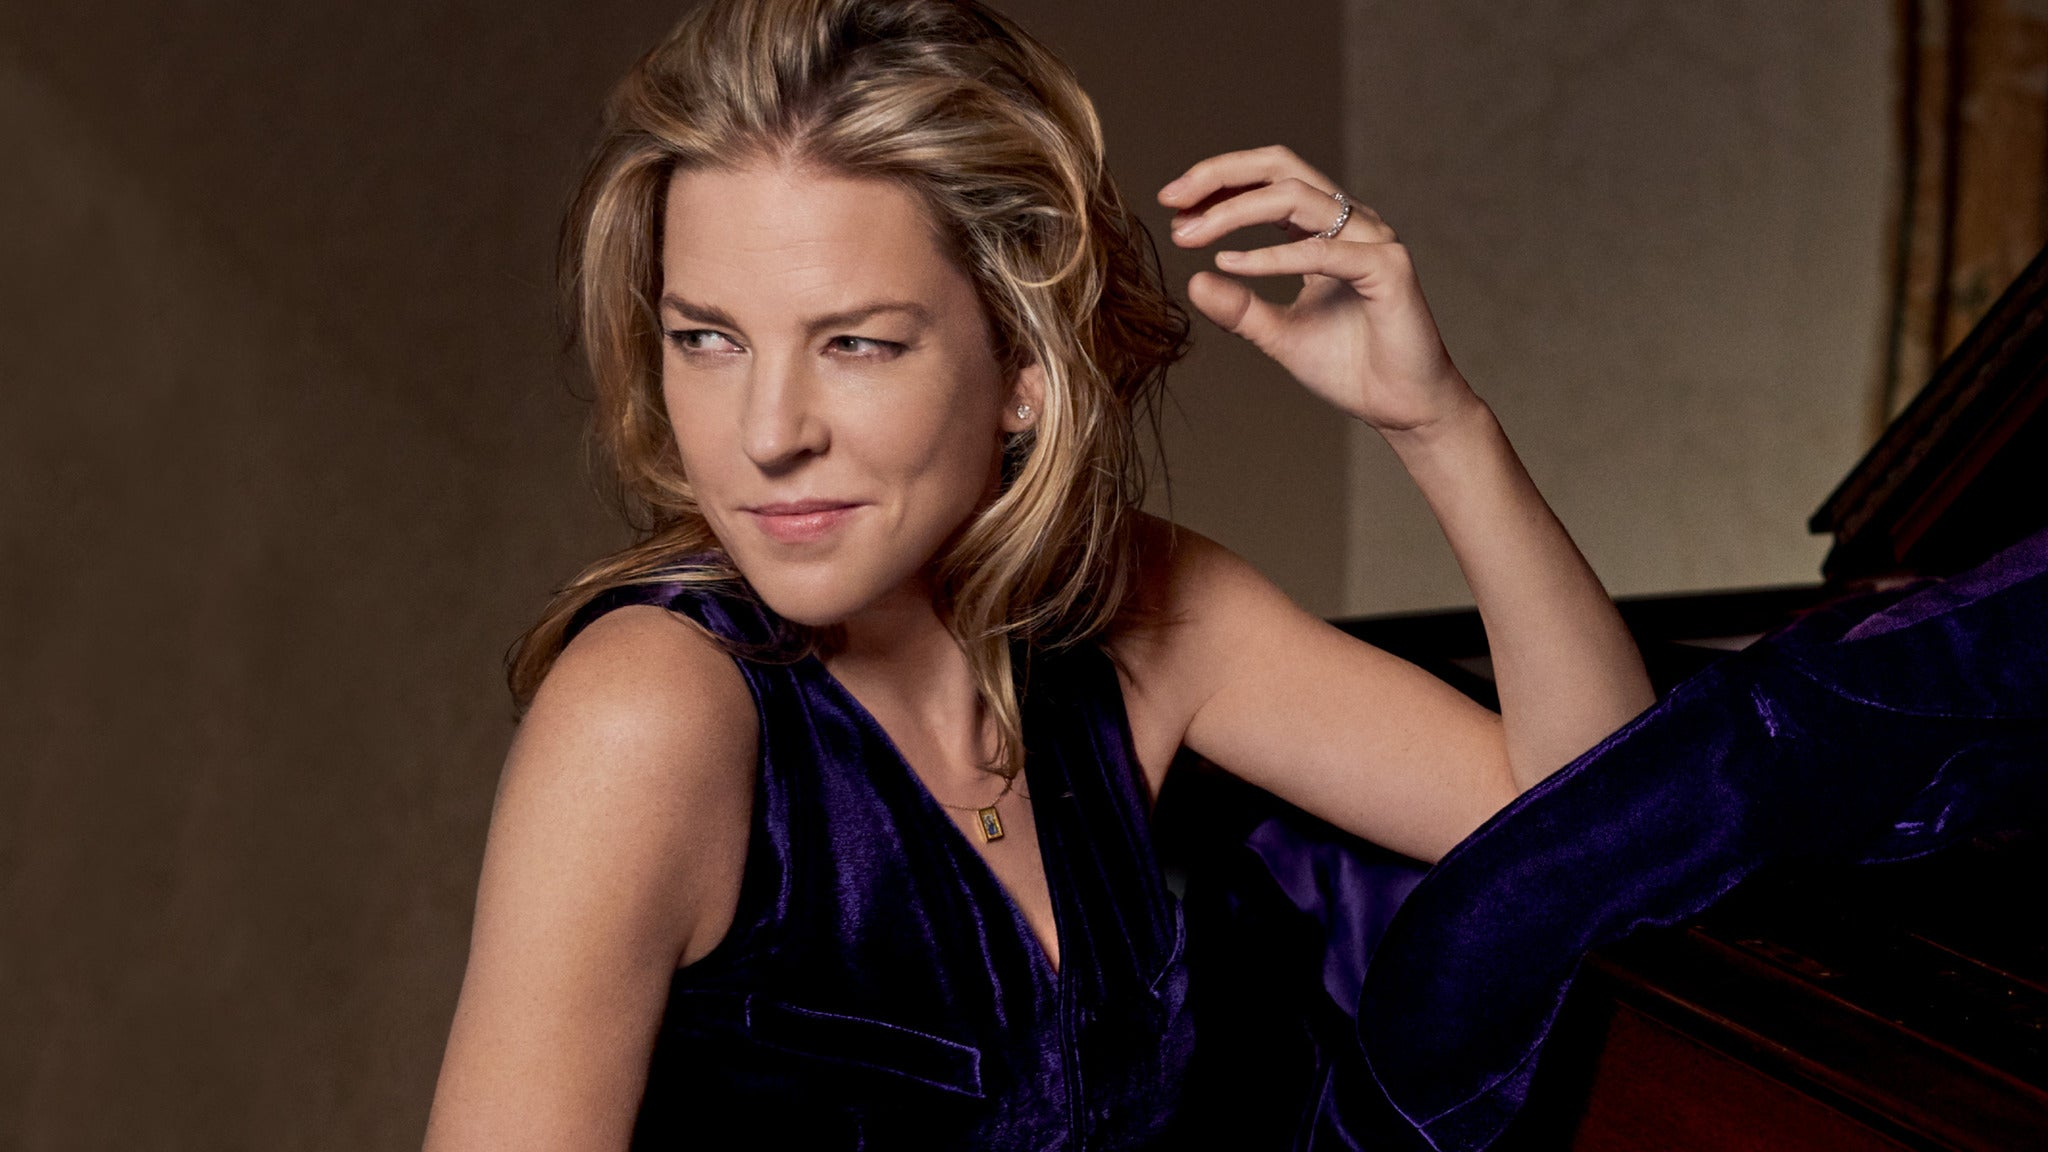 Diana Krall at Weill Hall at Sonoma State University